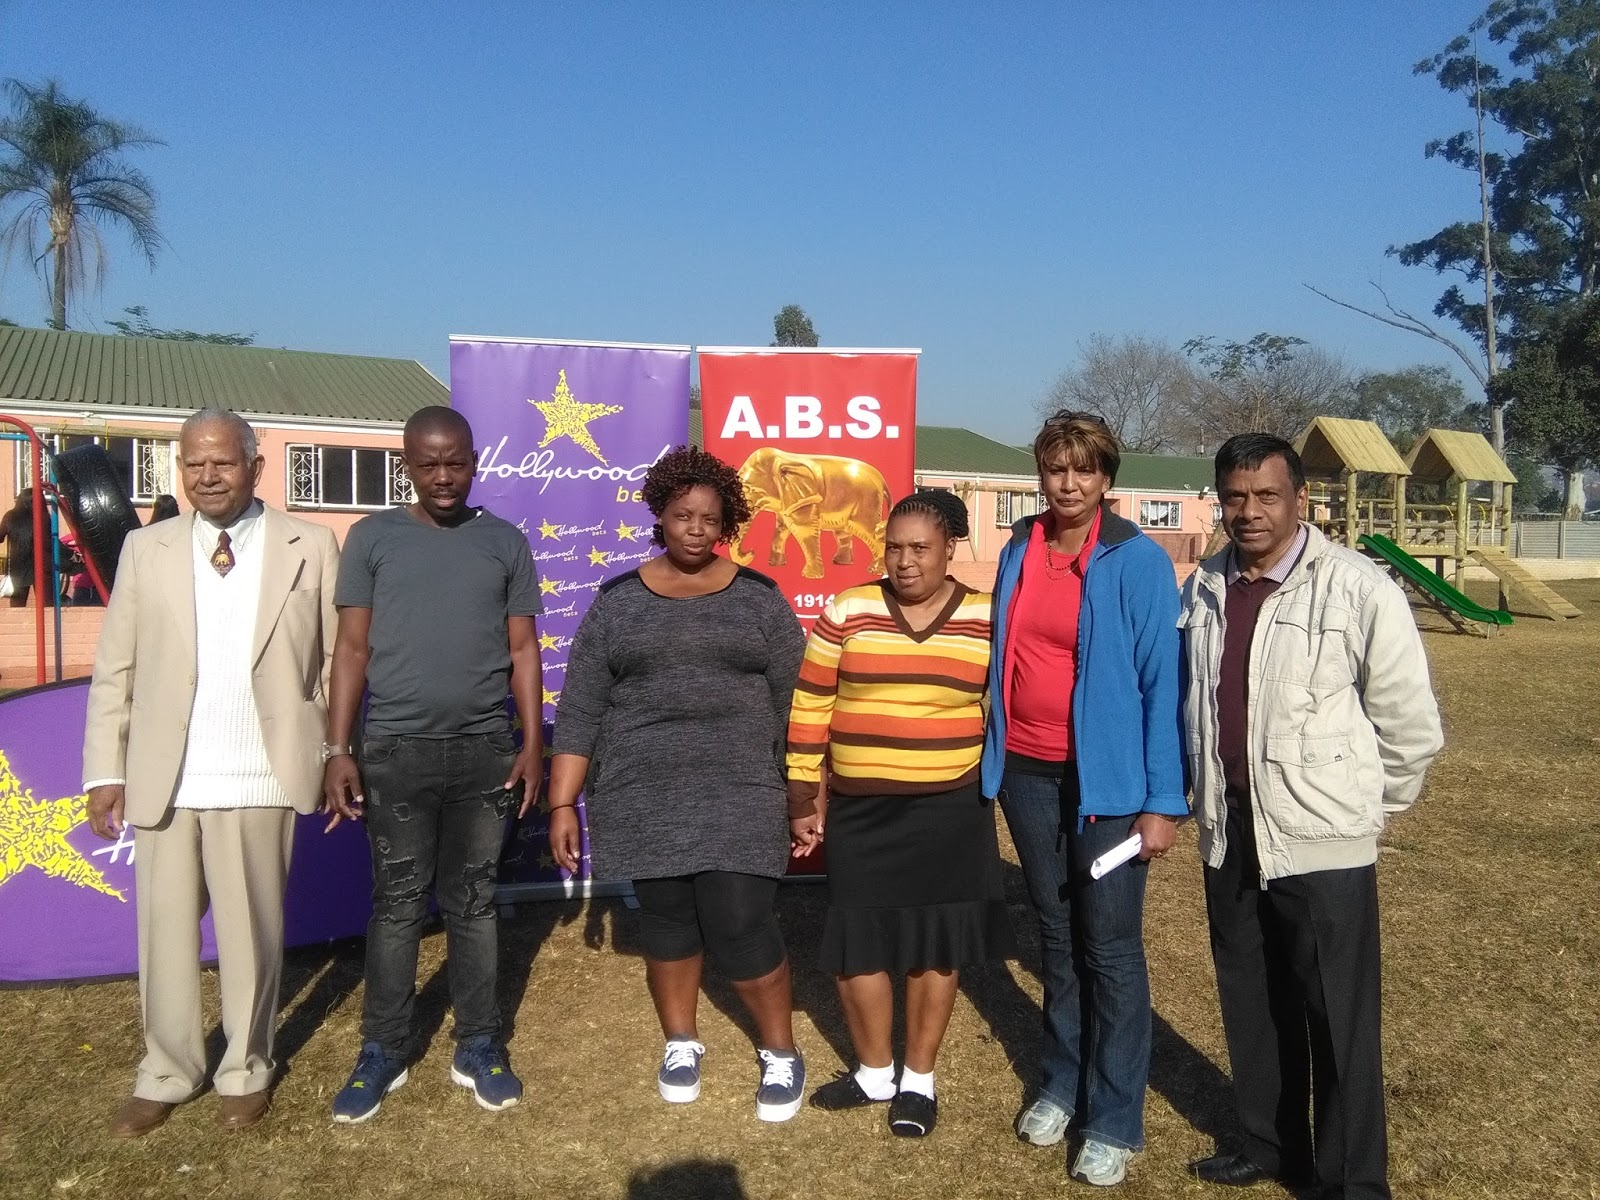 The team from the Sunlit Gardens Home for Children - Hollywoodbets Donations - Social Responsibility - Allandale, Pietermaritzburg - Mandela Day